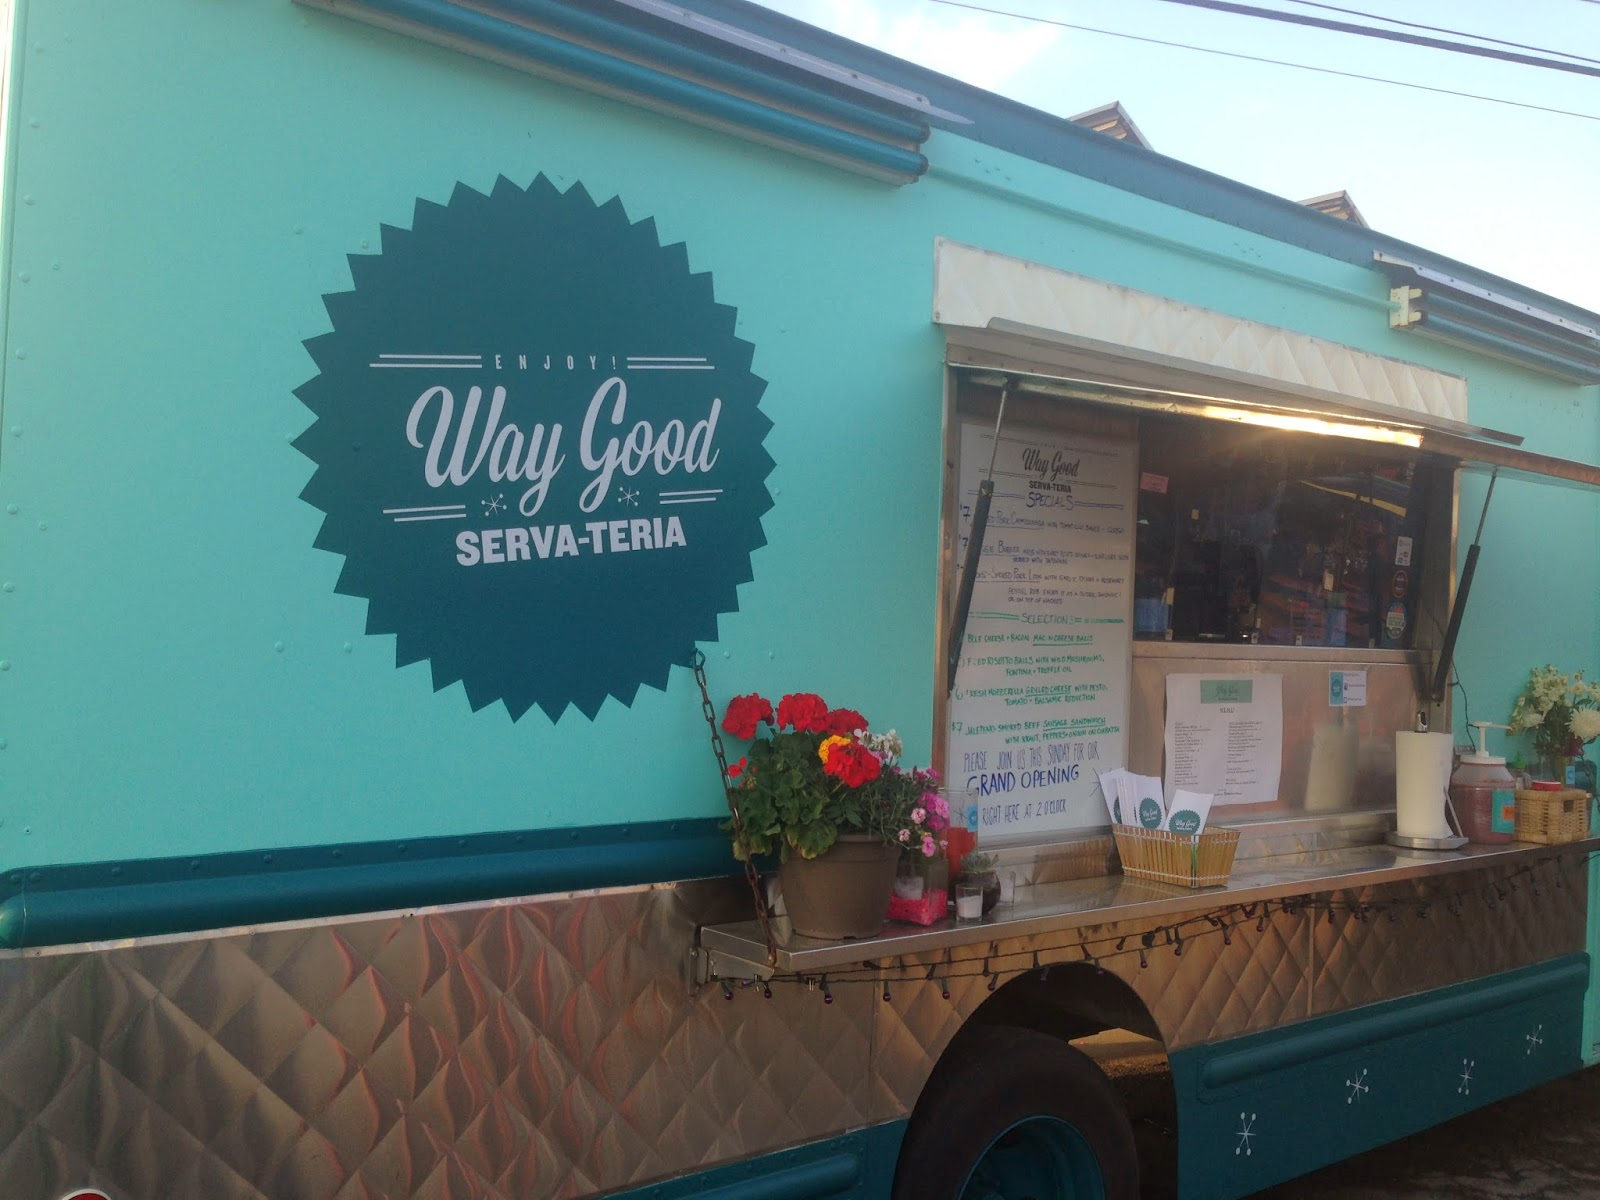 Way Good Serva-Teria Food Truck, Houston TX